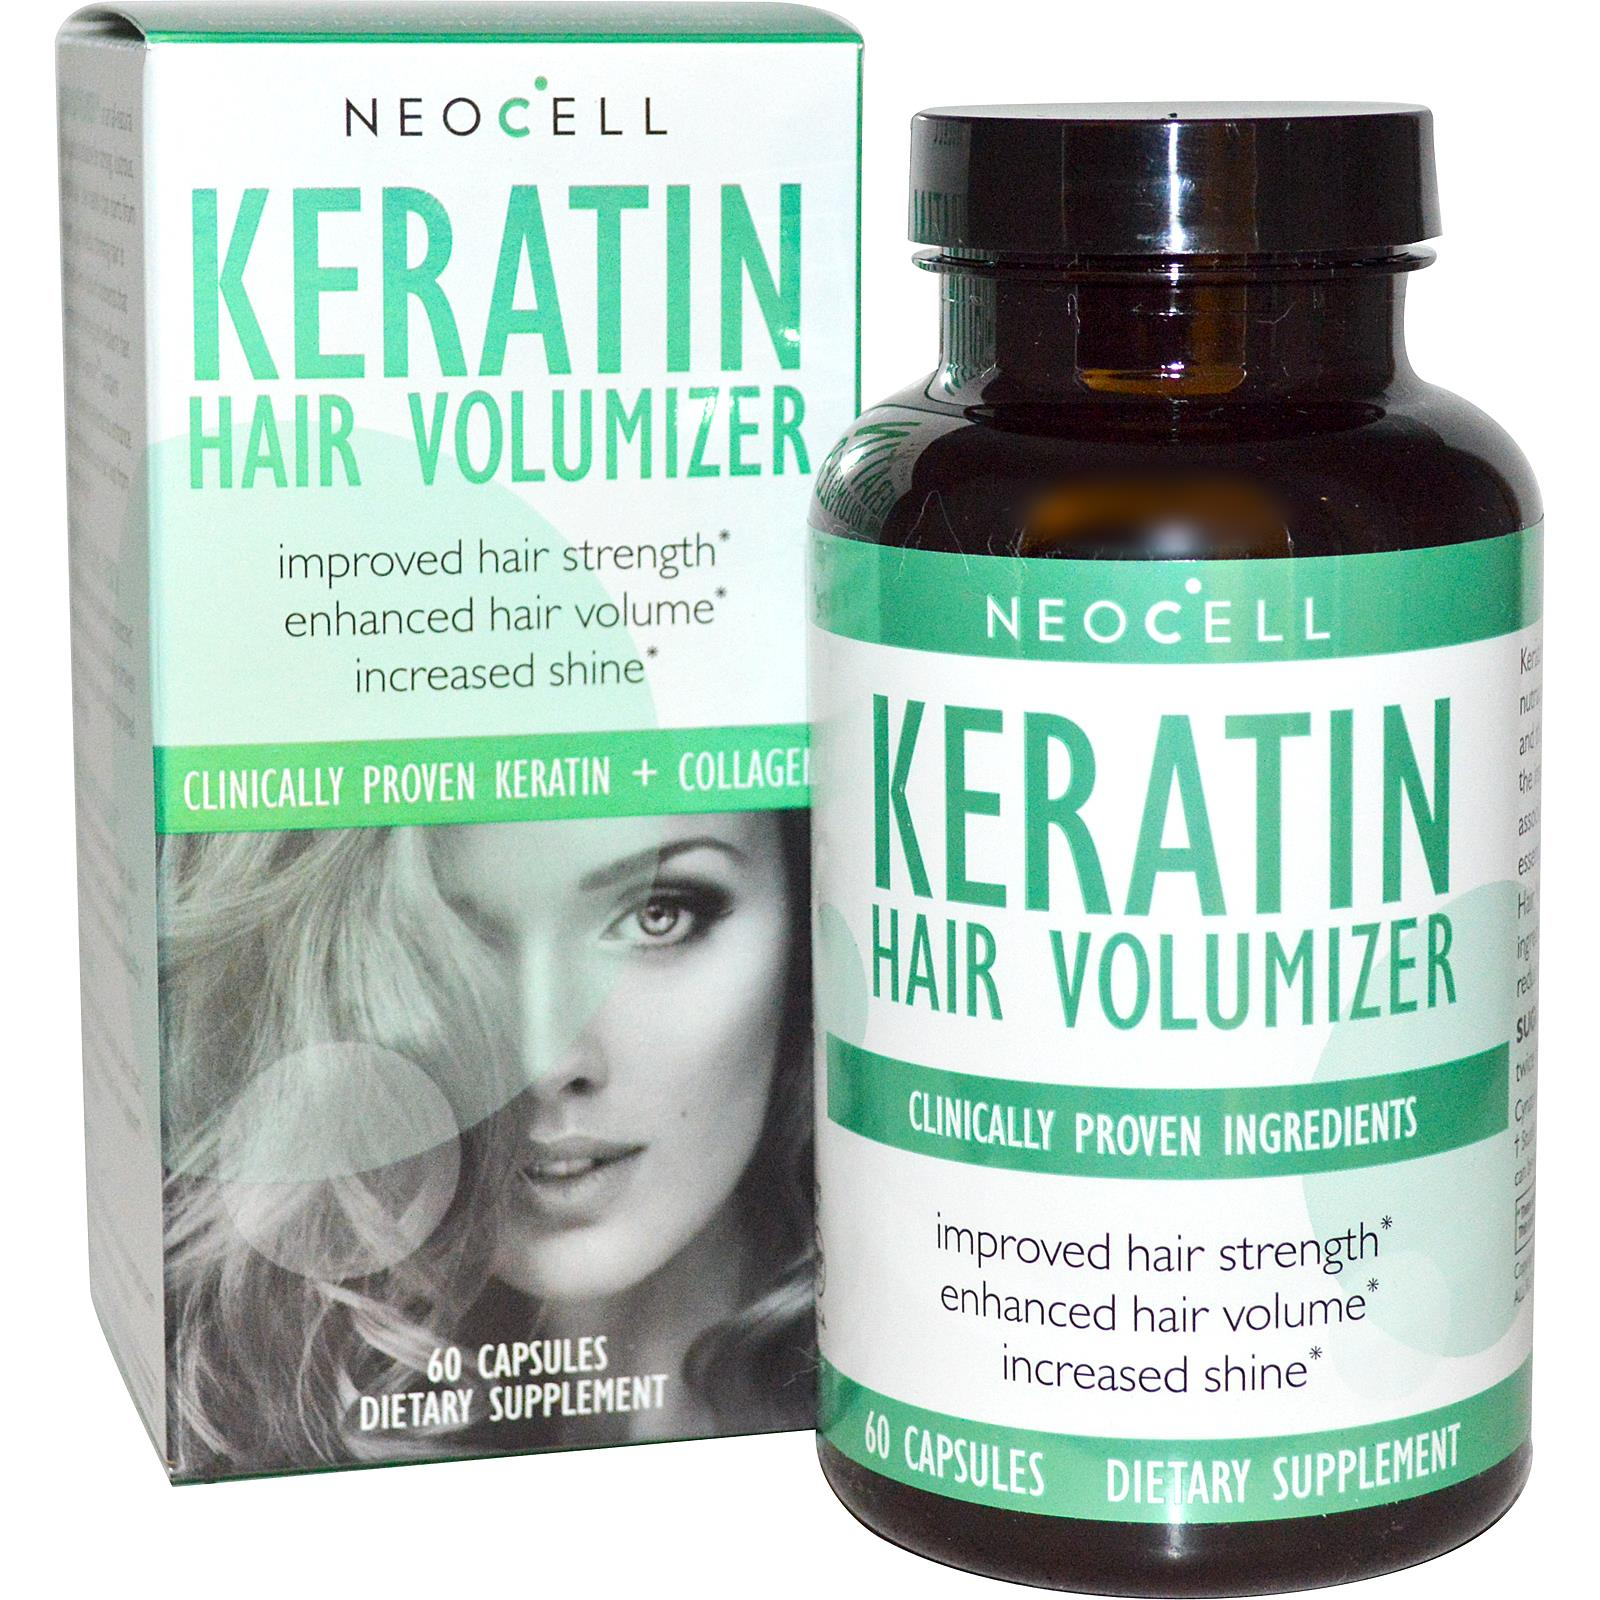 Capsules for hair